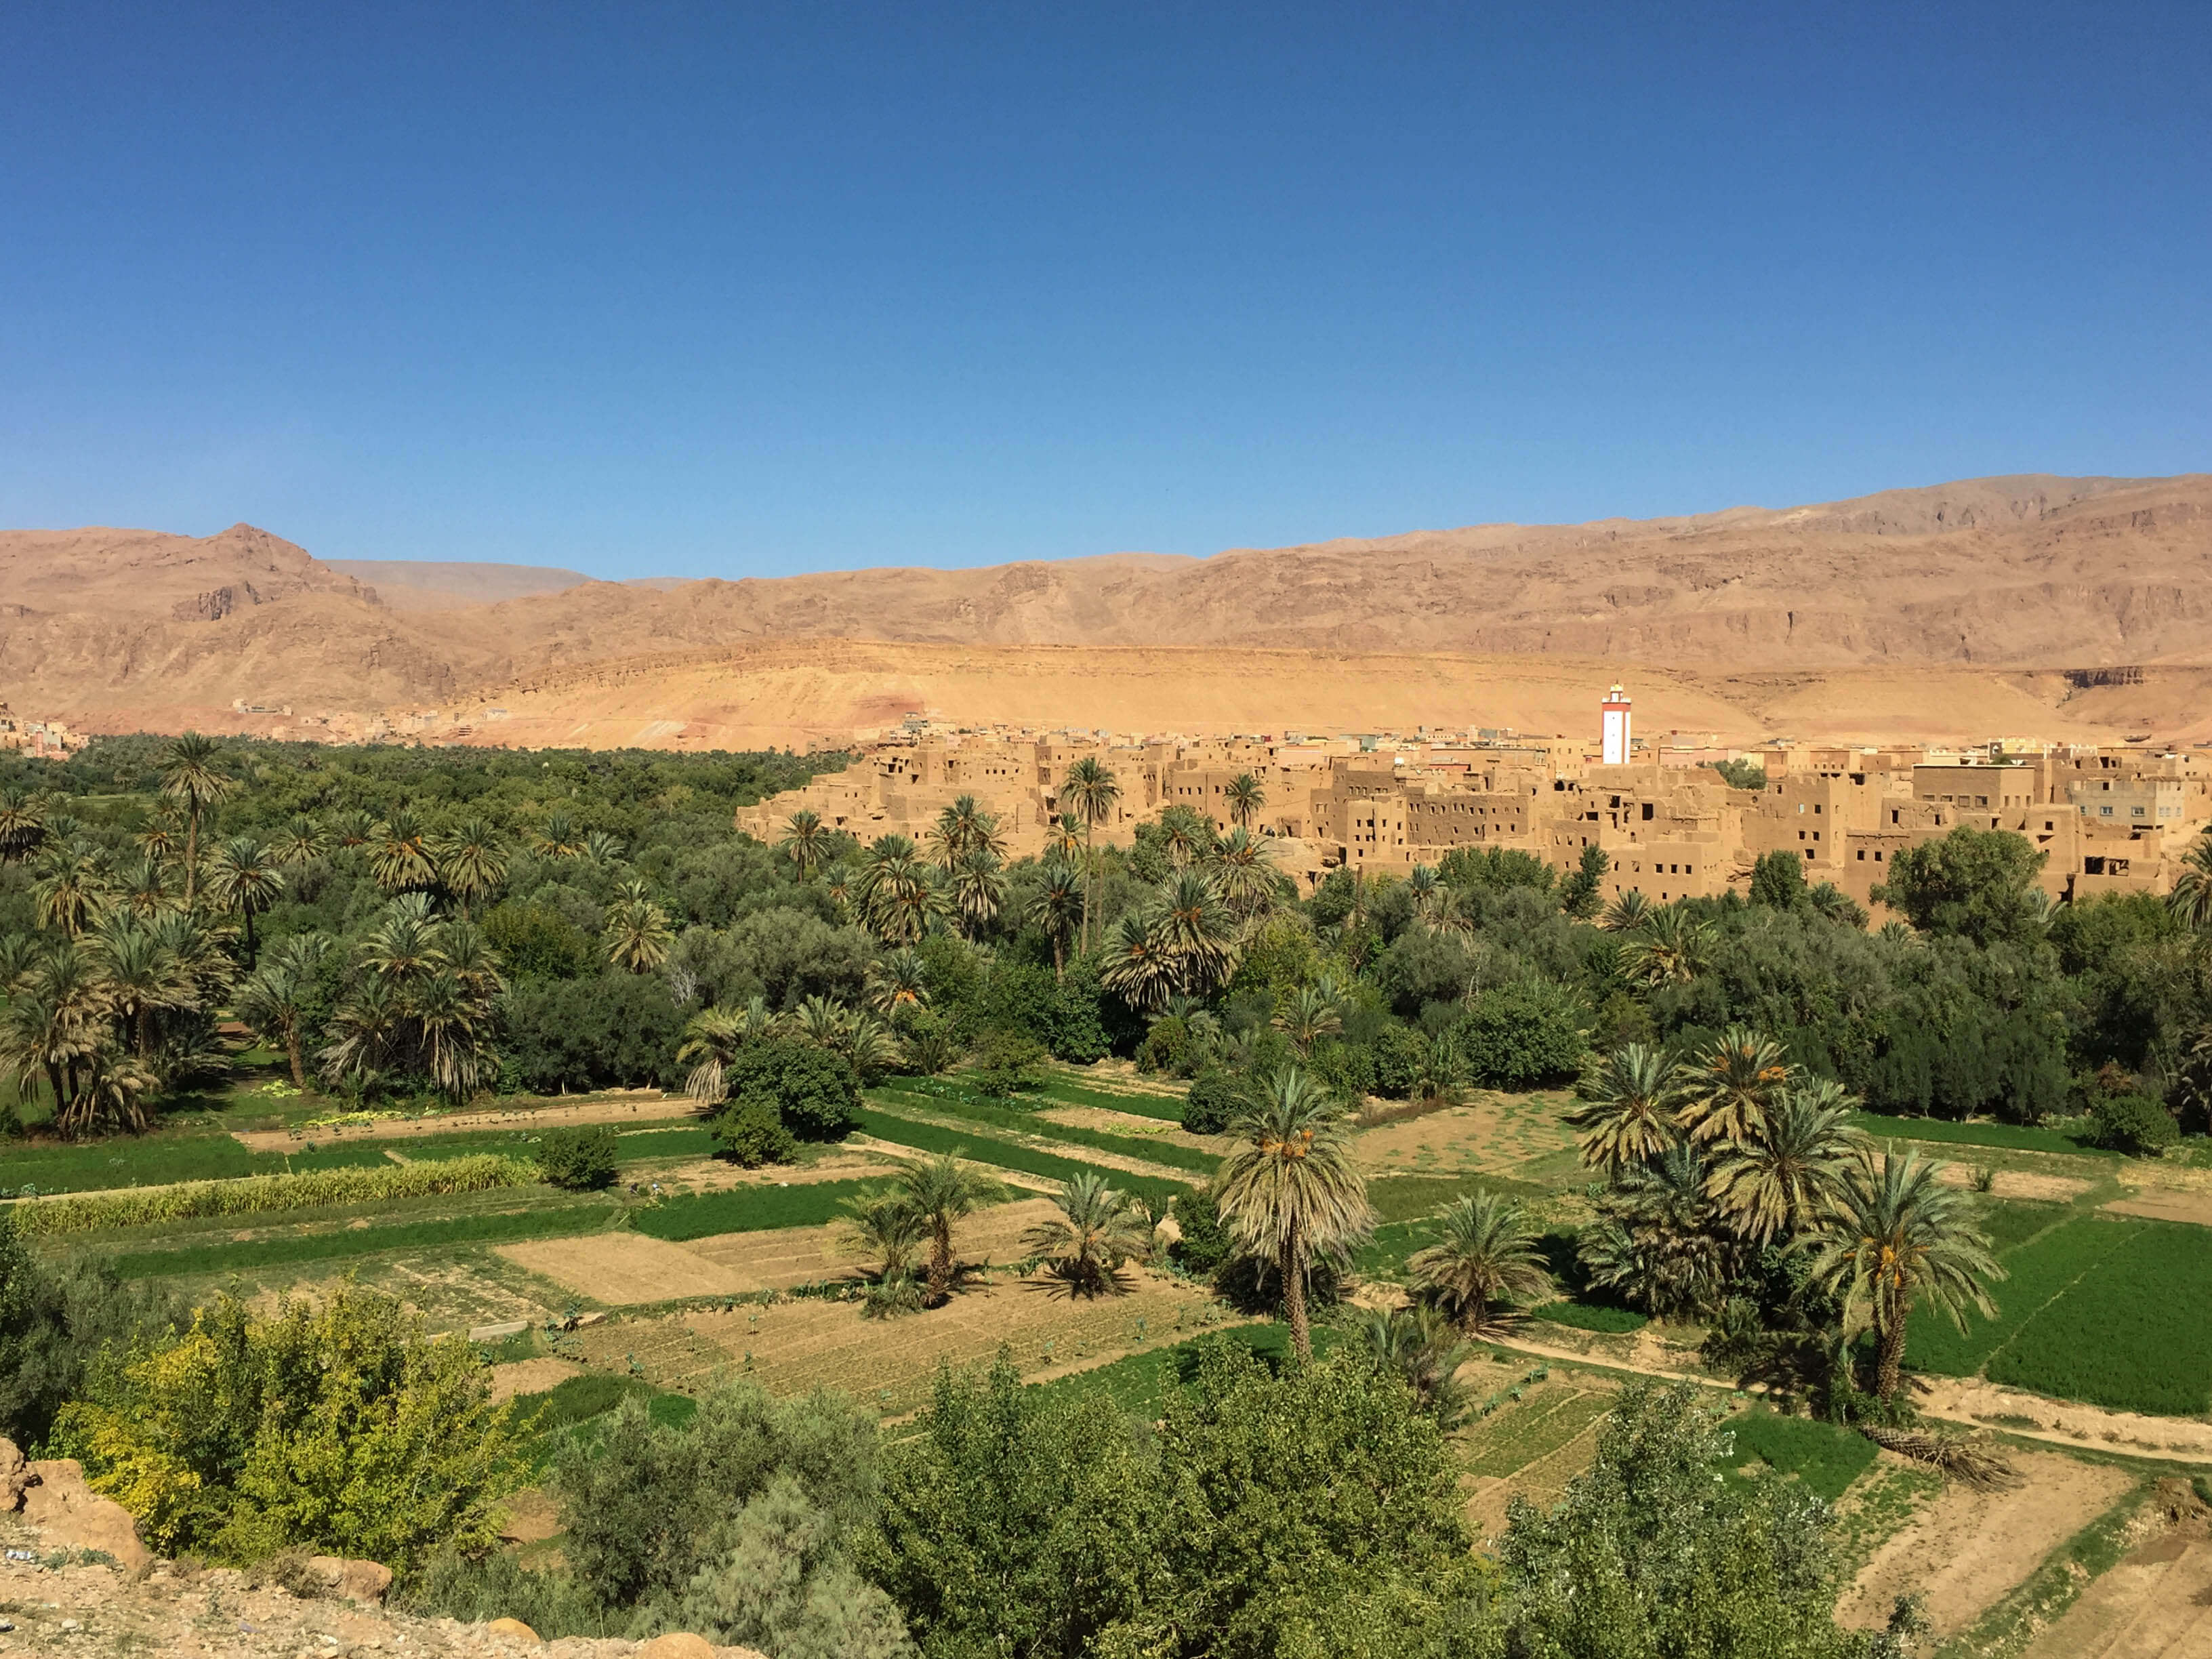 driving through Tinghir on our Morrocan road trip